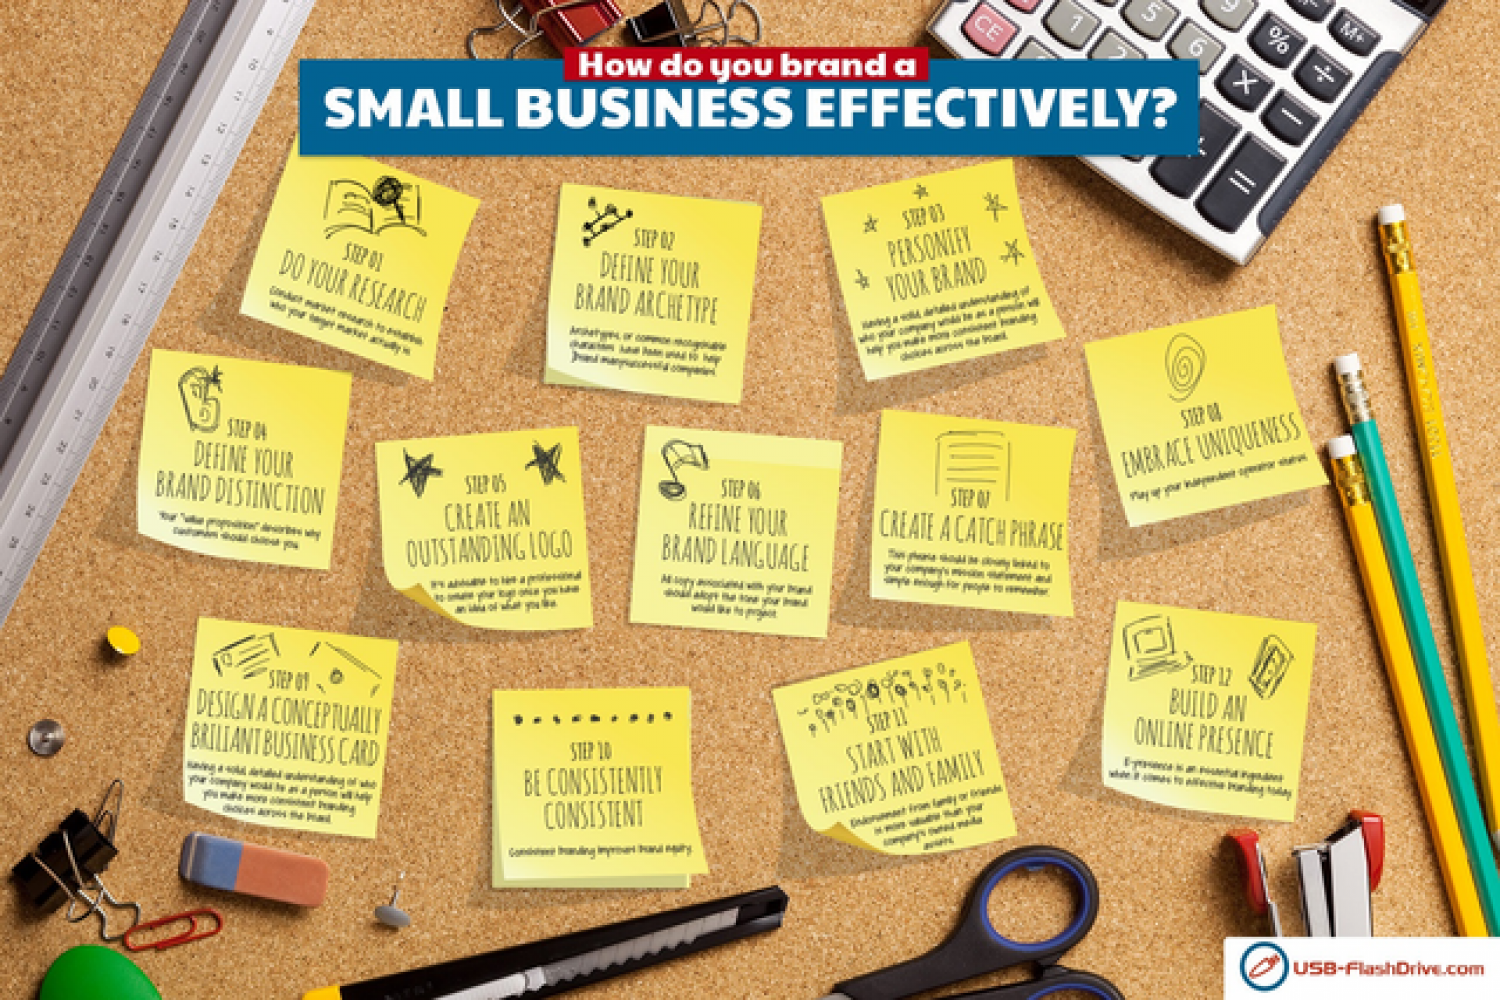 How To Brand a Small Business Effectively Infographic